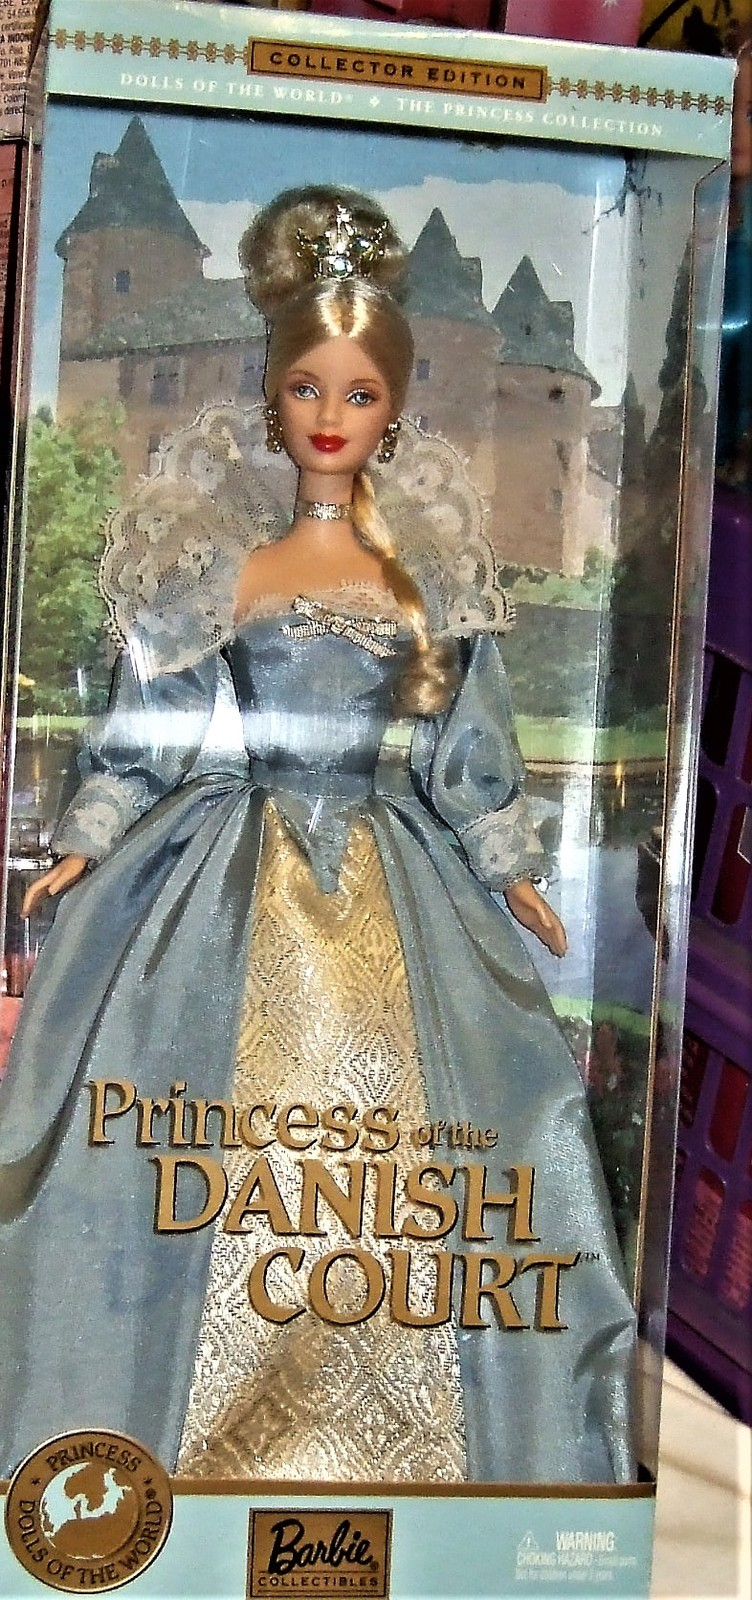 Barbie Dolls of the World Princess of the Danish Court Collector Edition 2002